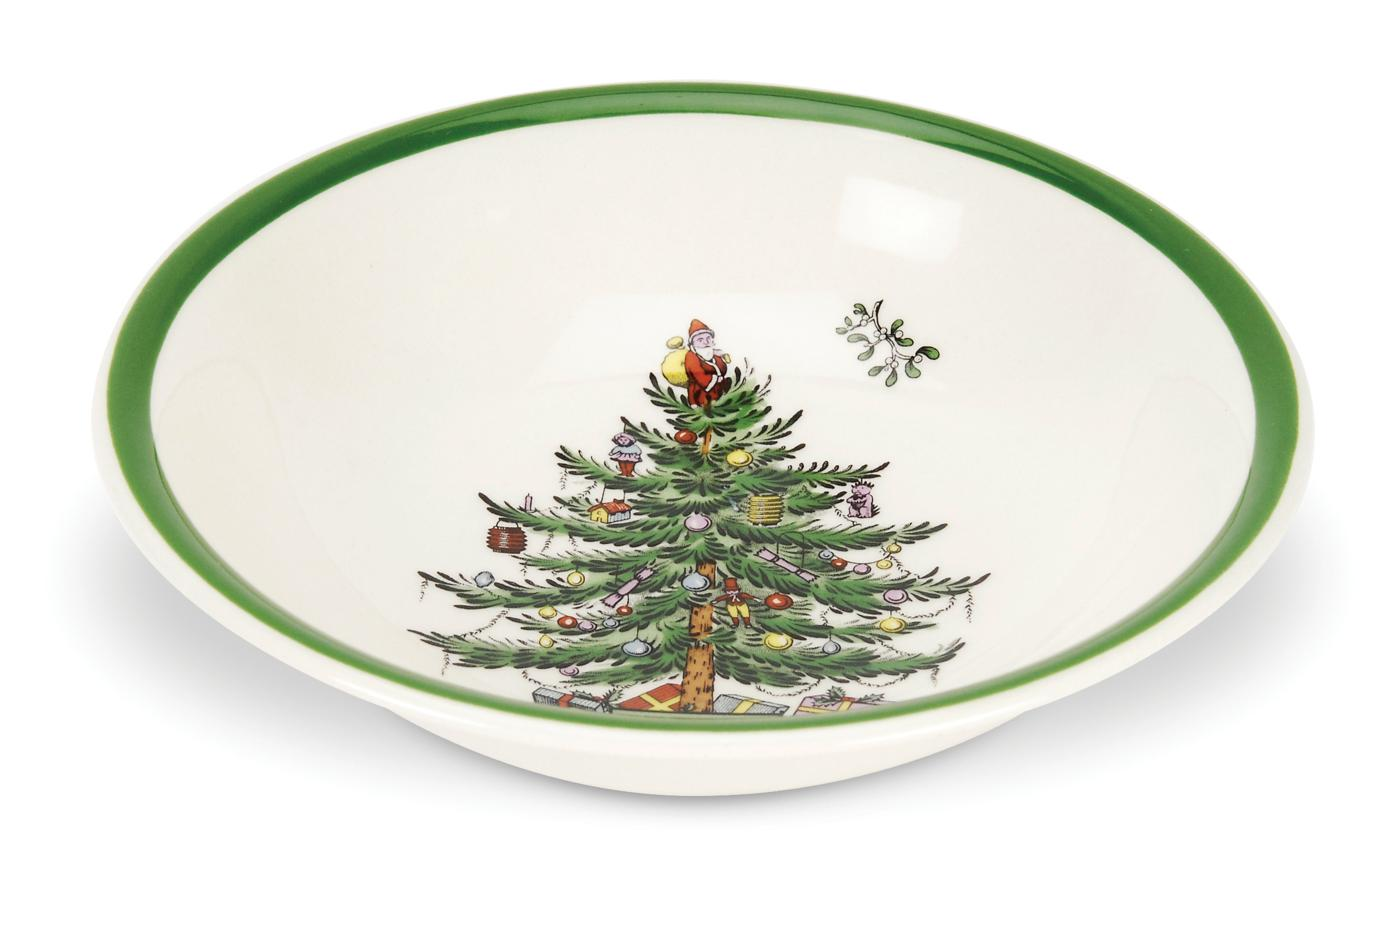 Spode Christmas Tree Set of 4 Ascot Cereal Bowls image number null